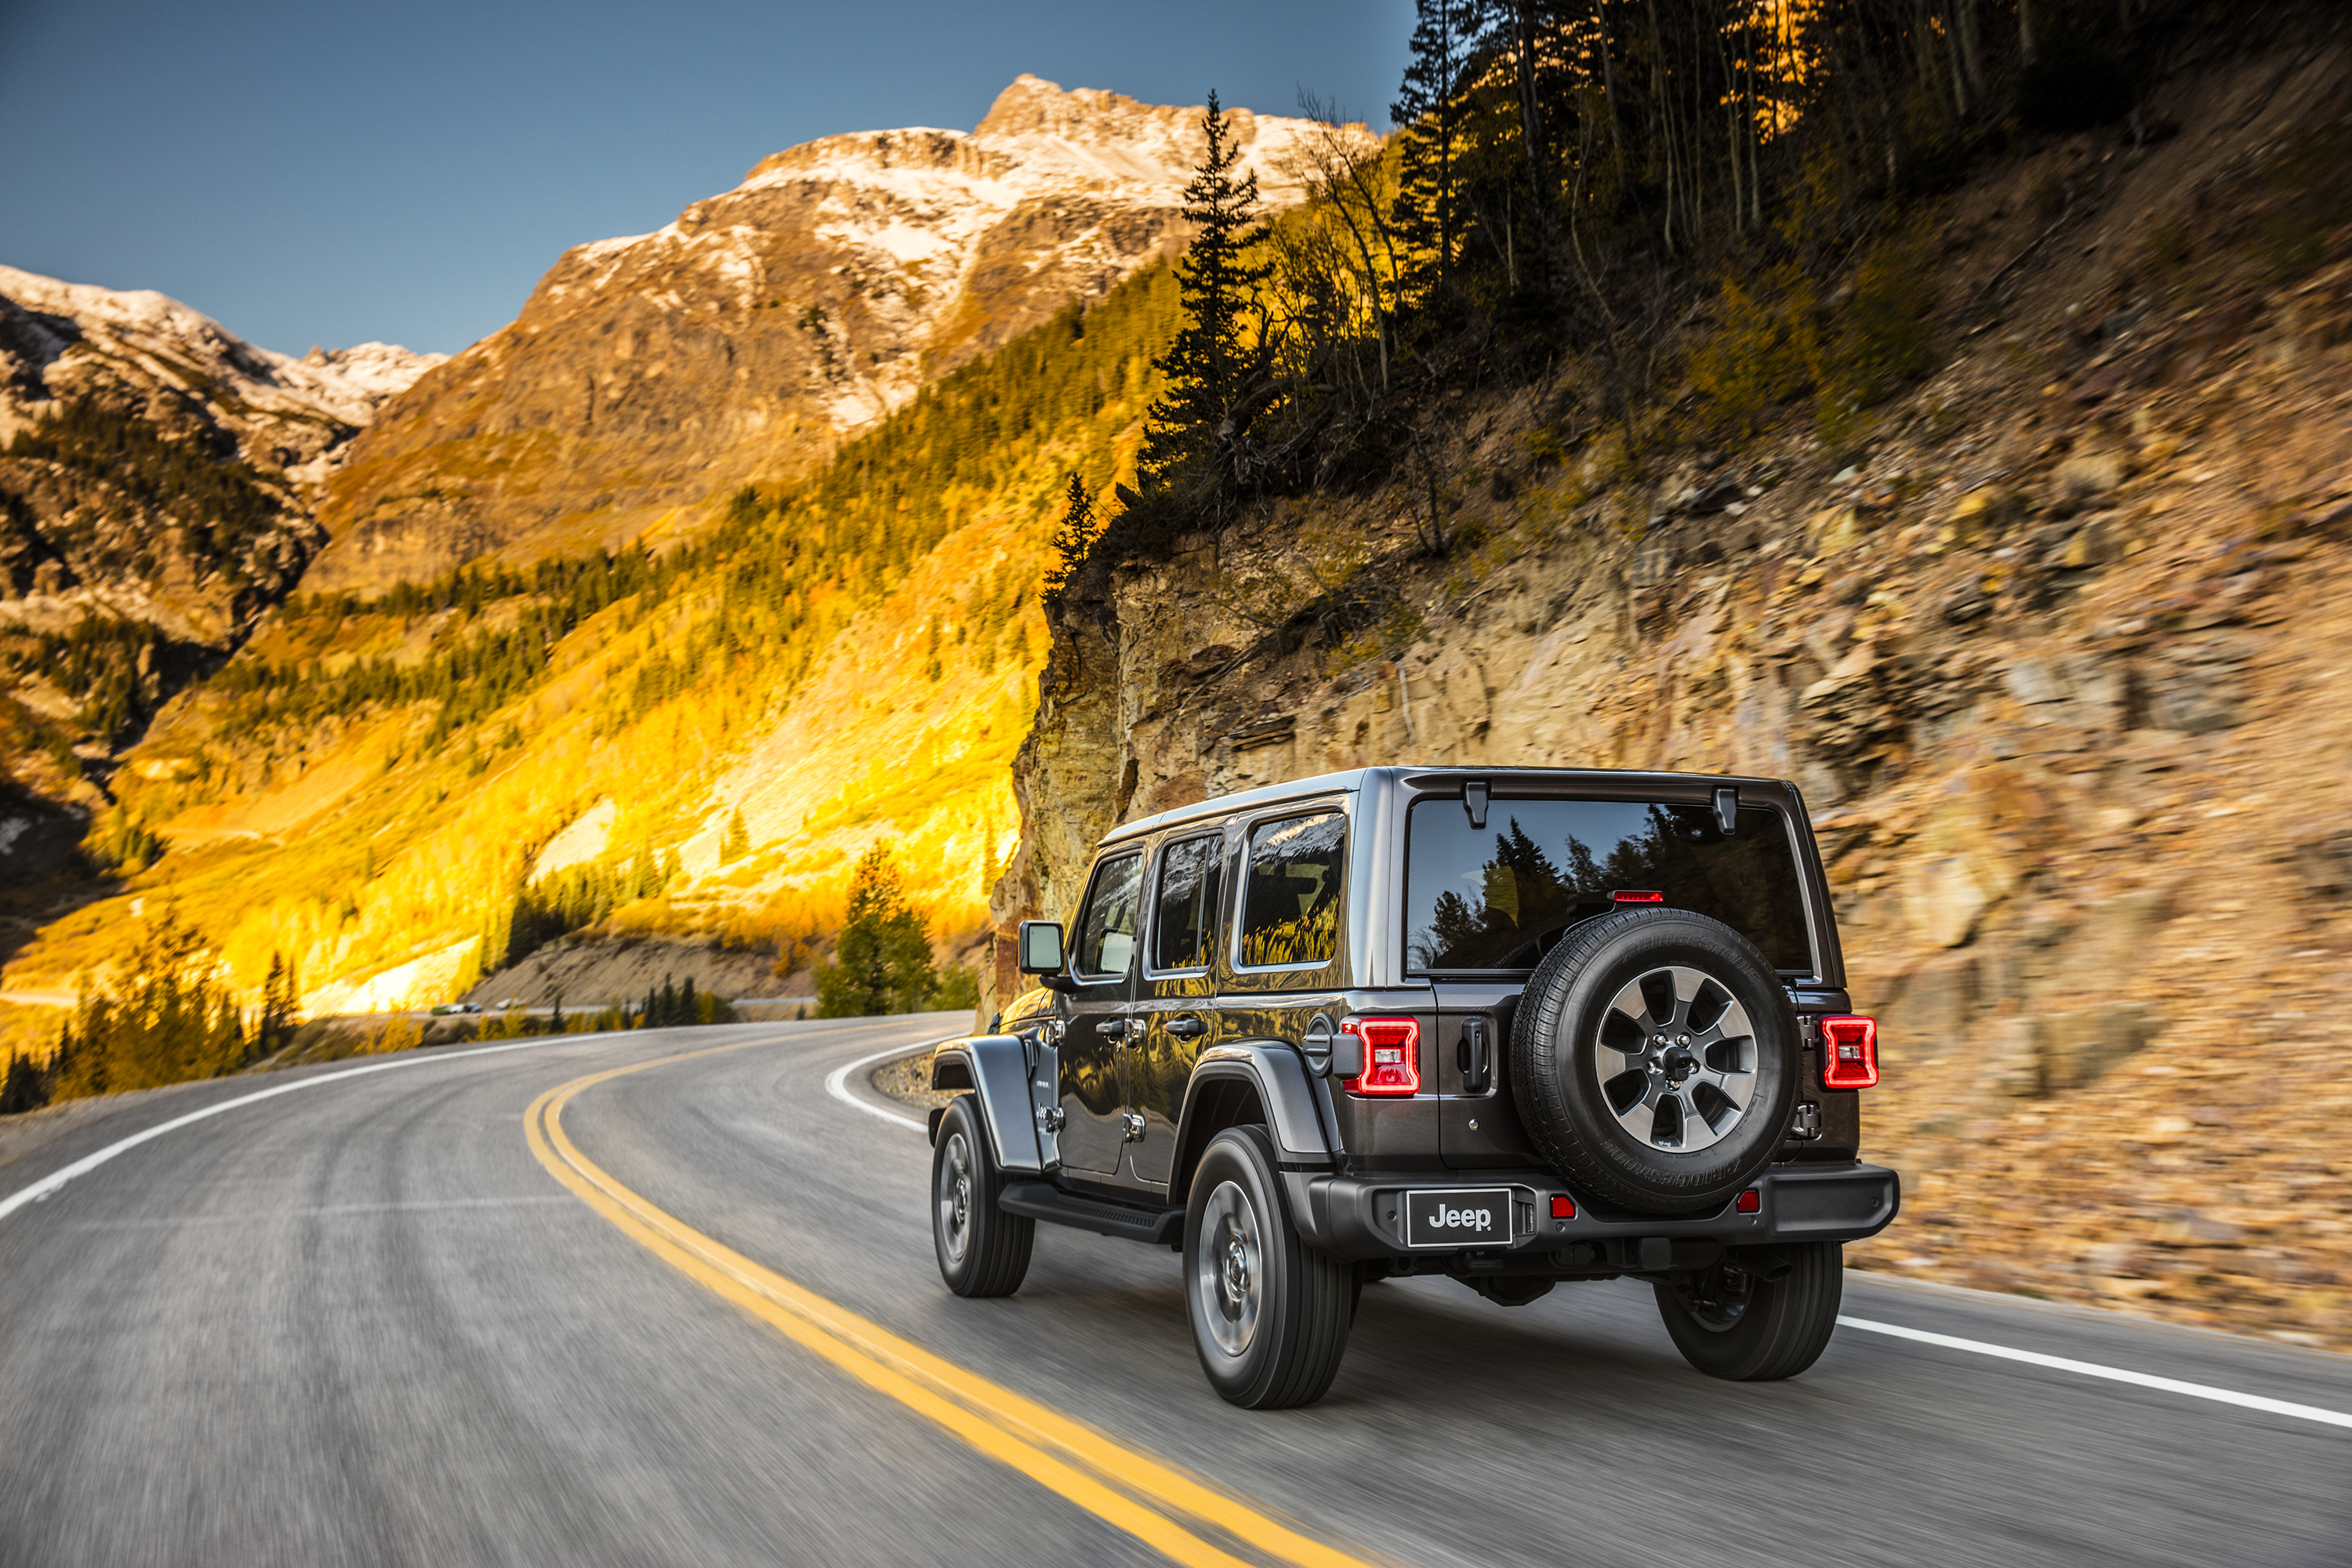 2018 Jeep Wrangler Sahara rear driving